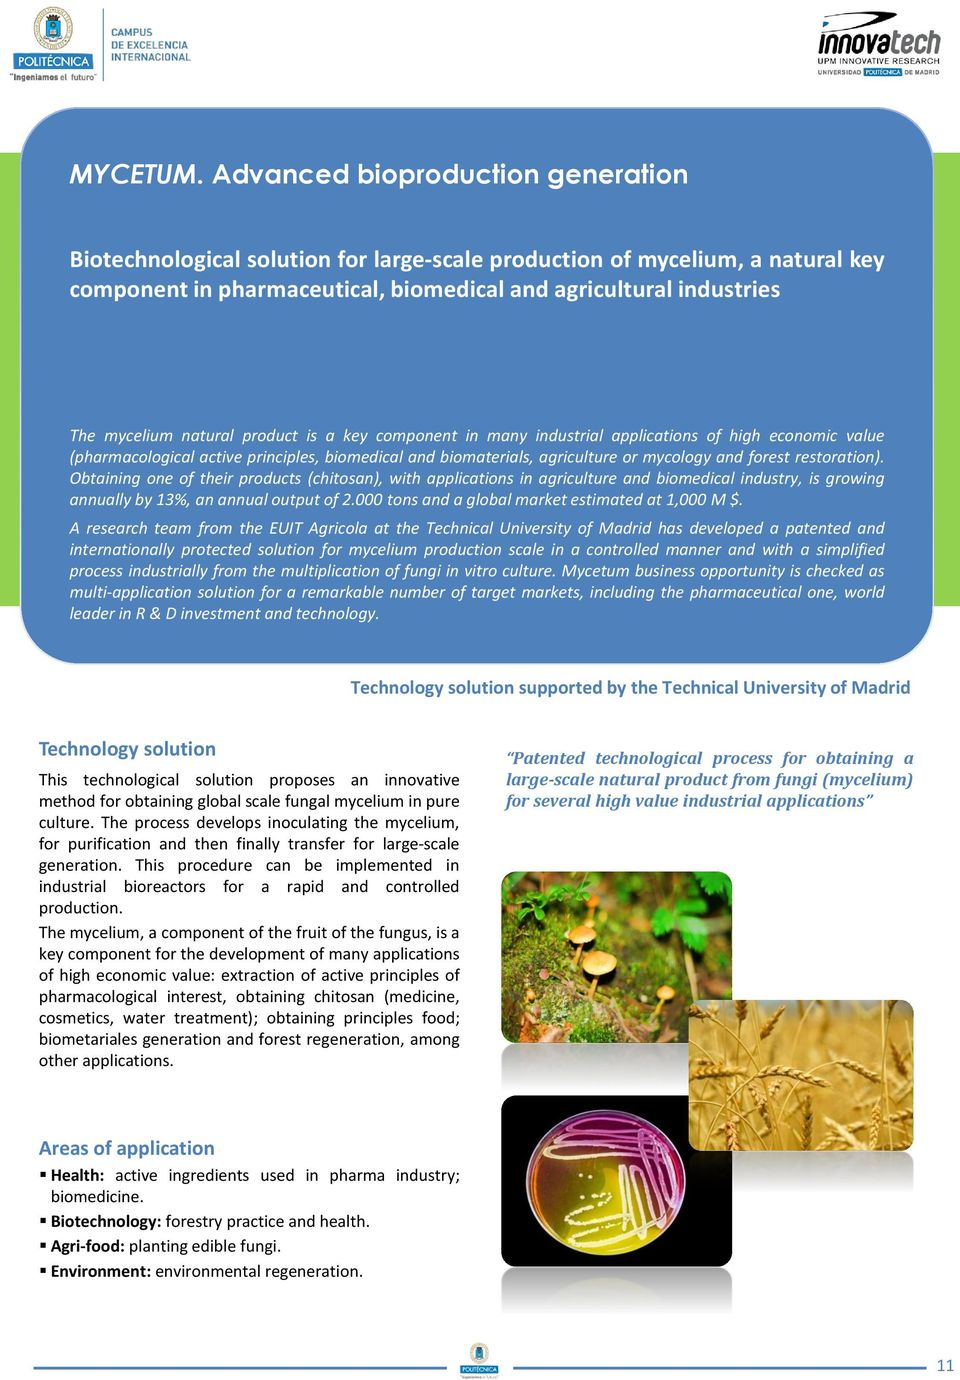 natural product is a key component in many industrial applications of high economic value (pharmacological active principles, biomedical and biomaterials, agriculture or mycology and forest